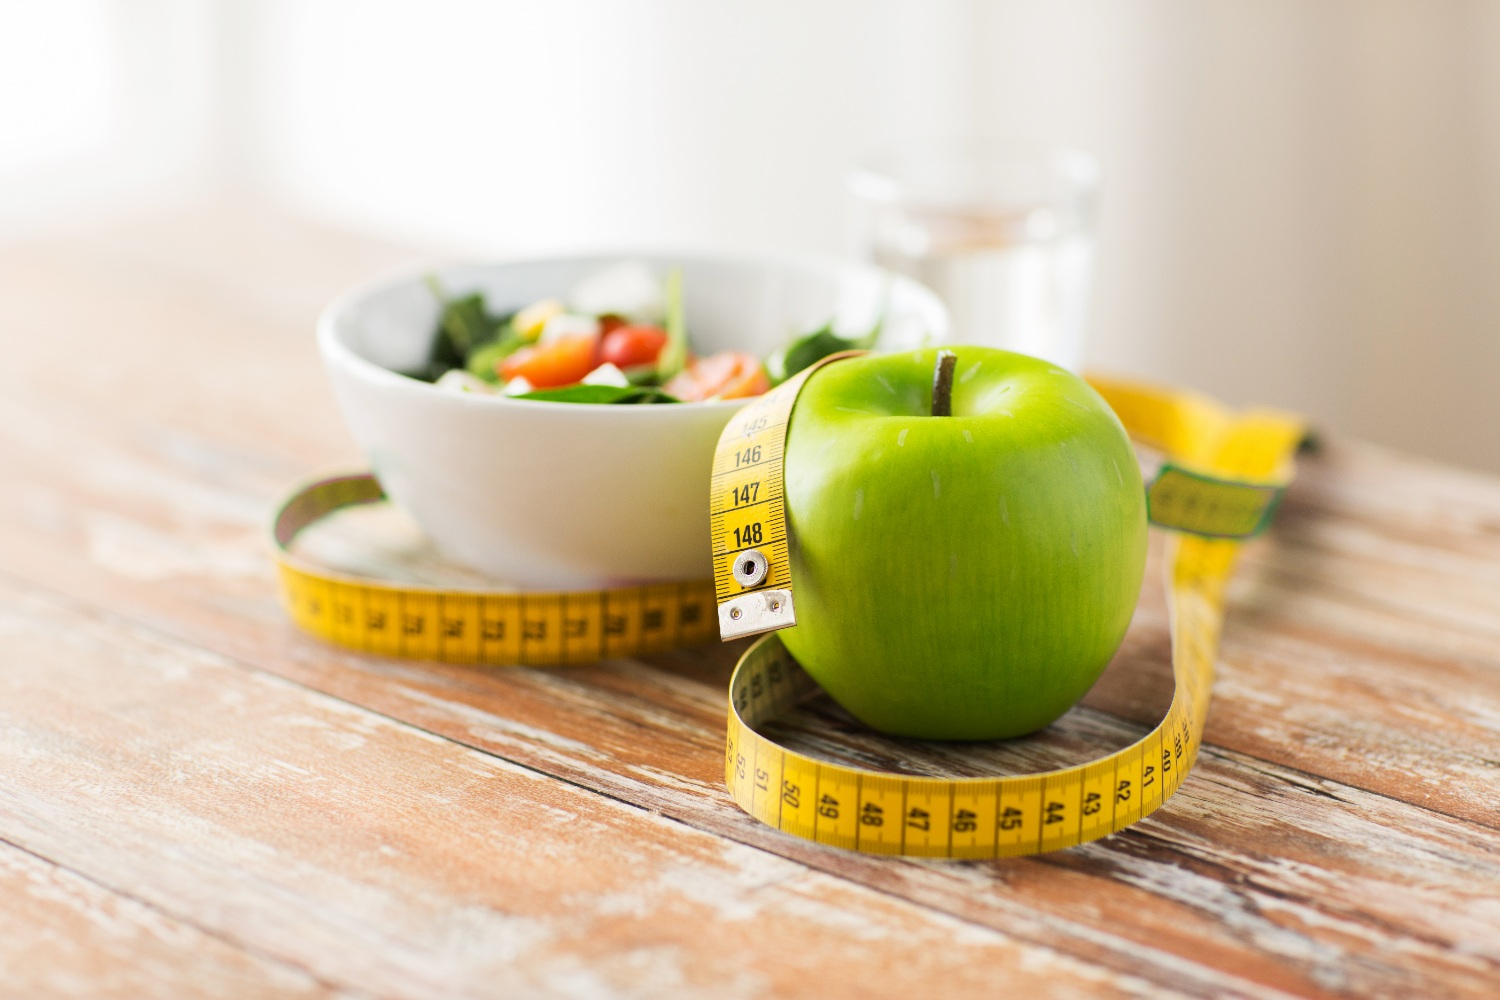 Restrictive diets have multiple side effects   Shutterstock